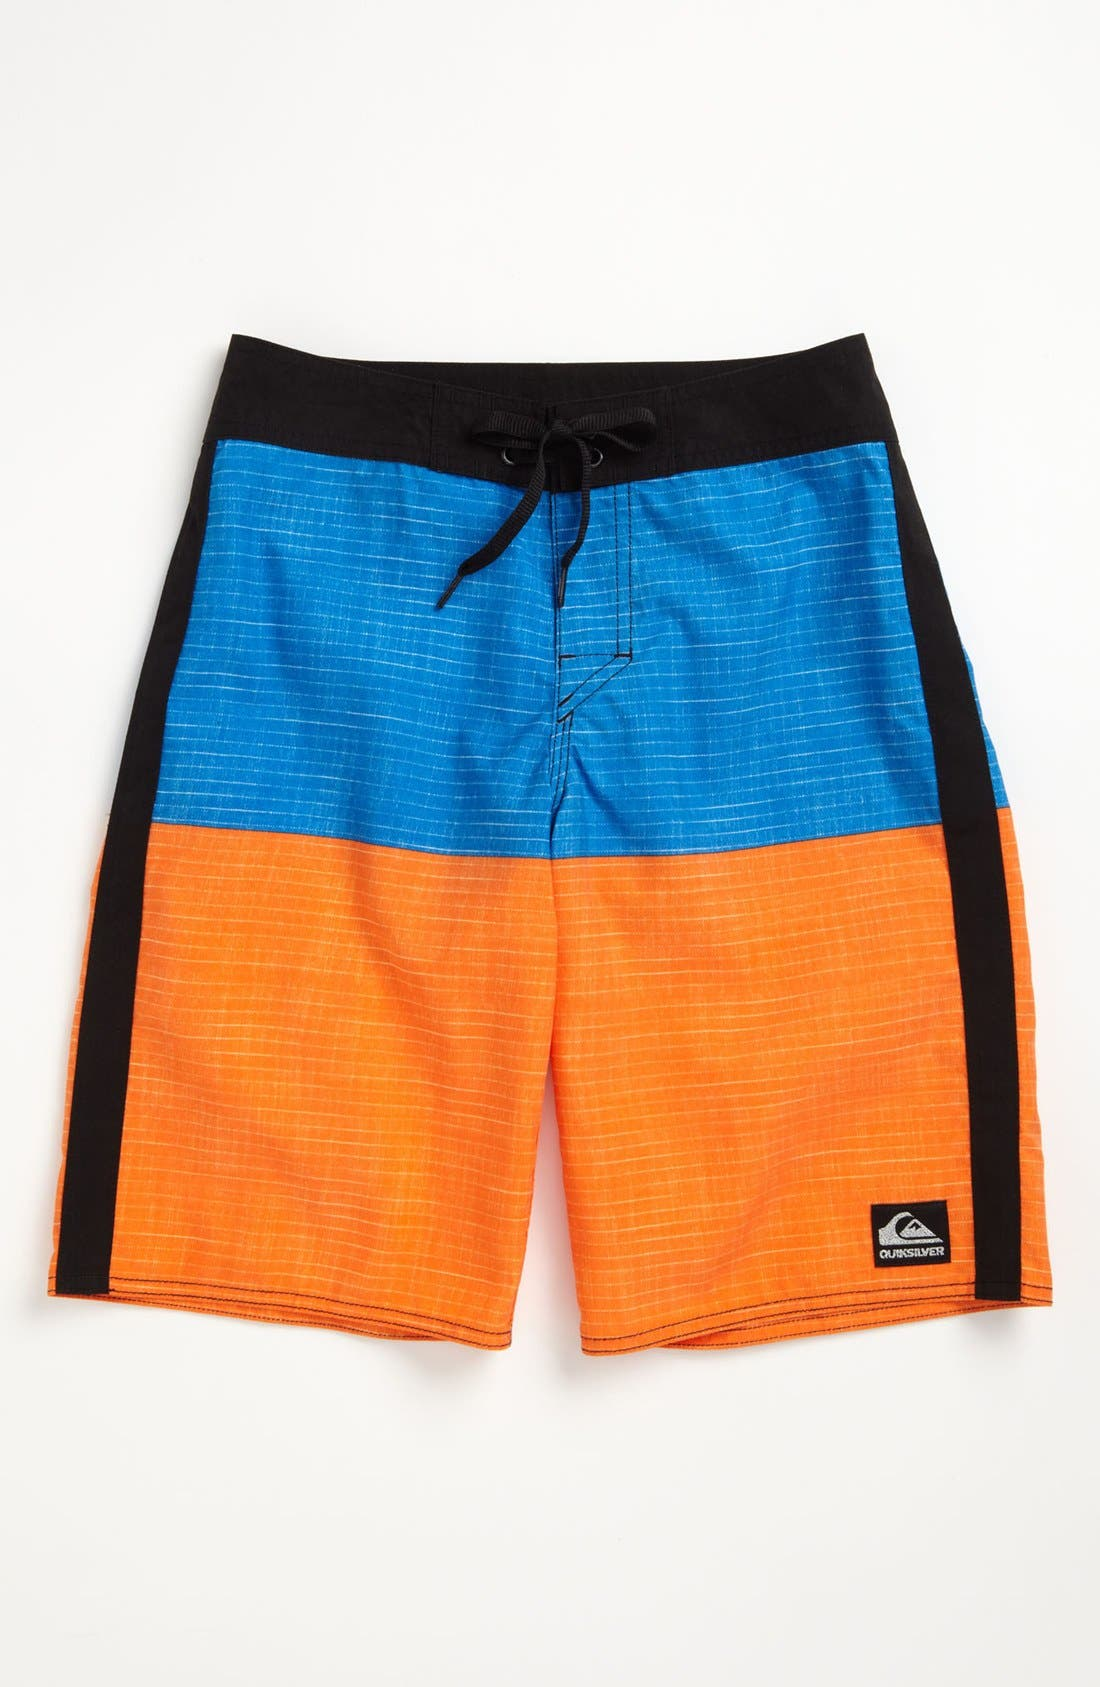 Alternate Image 1 Selected - Quiksilver Colorblock Board Shorts (Big Boys)